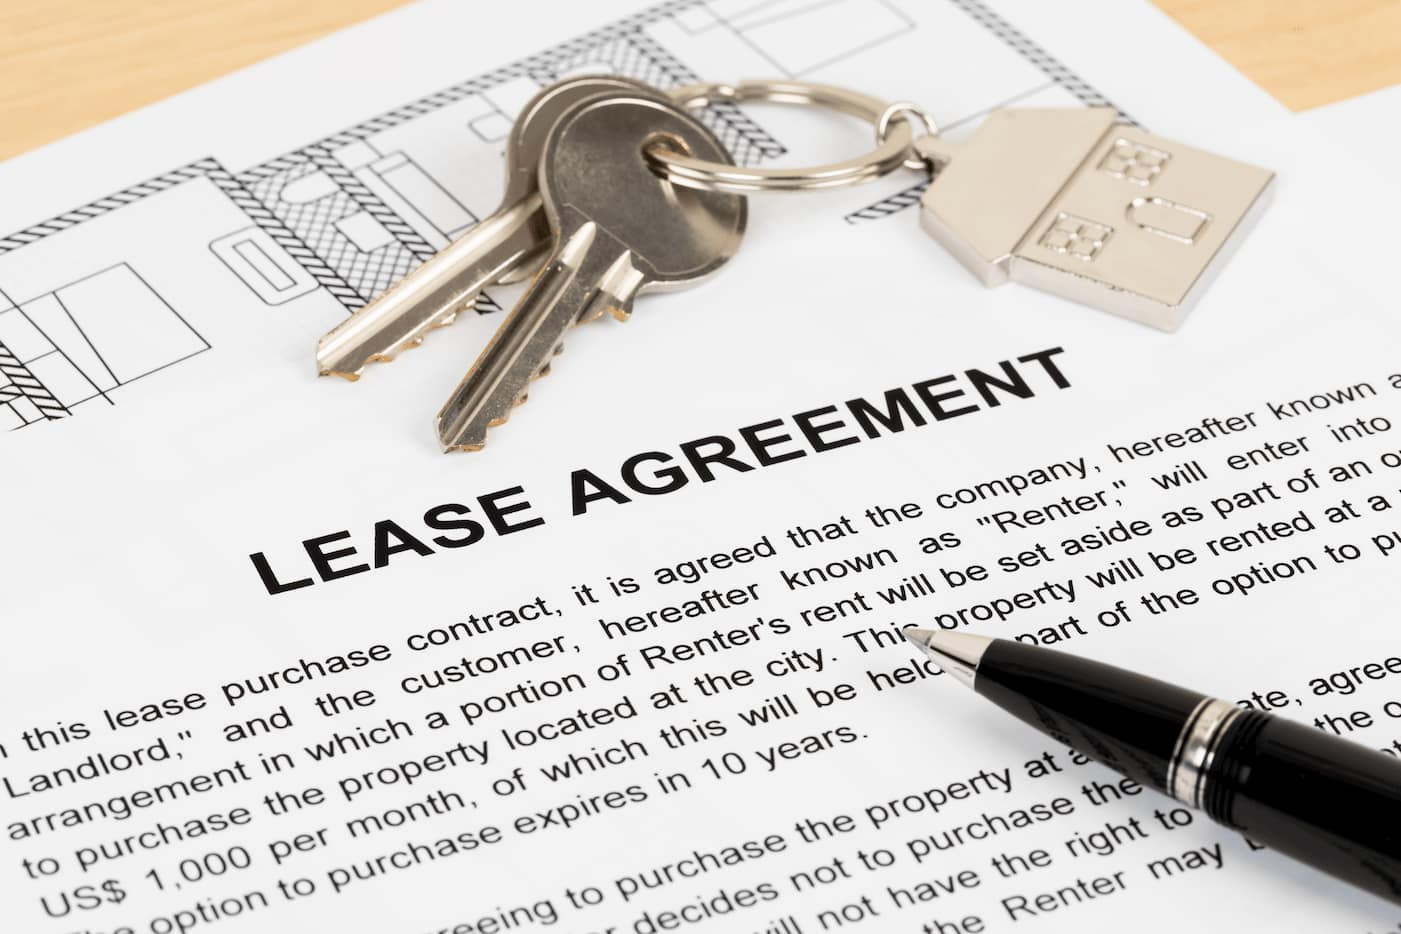 Lease agreement violation early termination